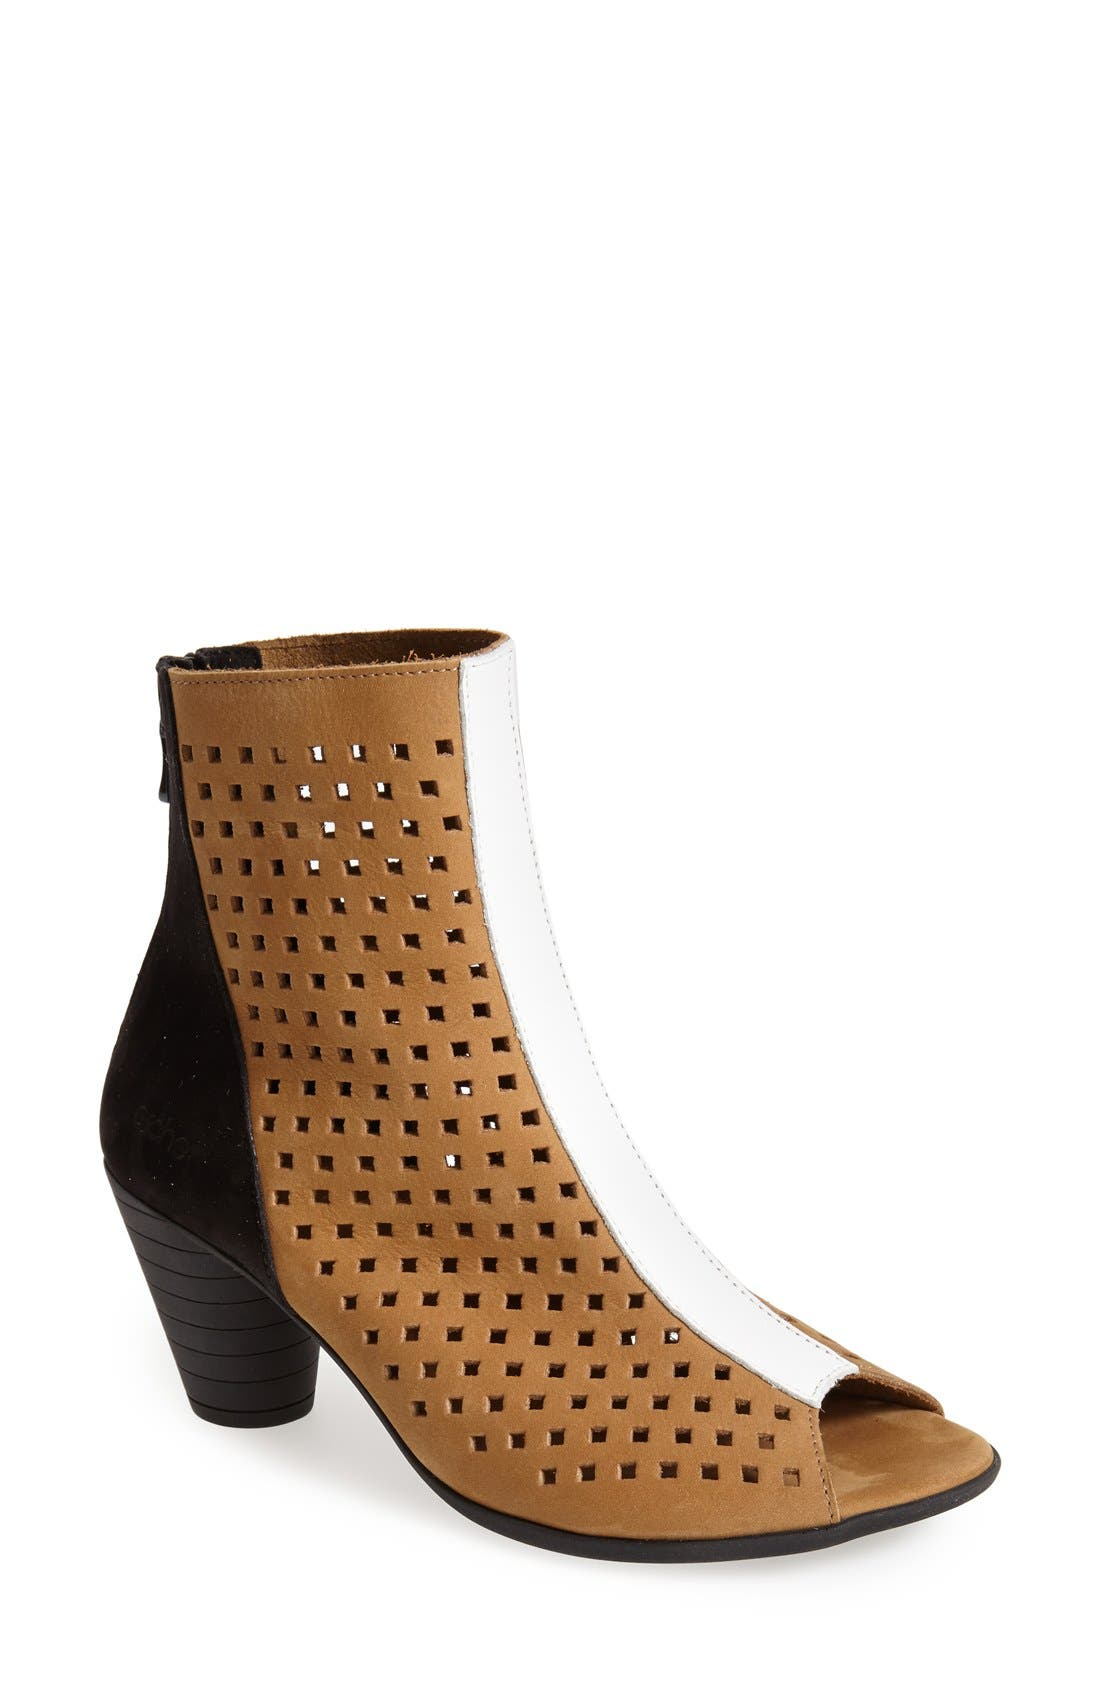 Alternate Image 1 Selected - Arche 'Fuega' Water Resistant Suede & Leather Boot (Women)